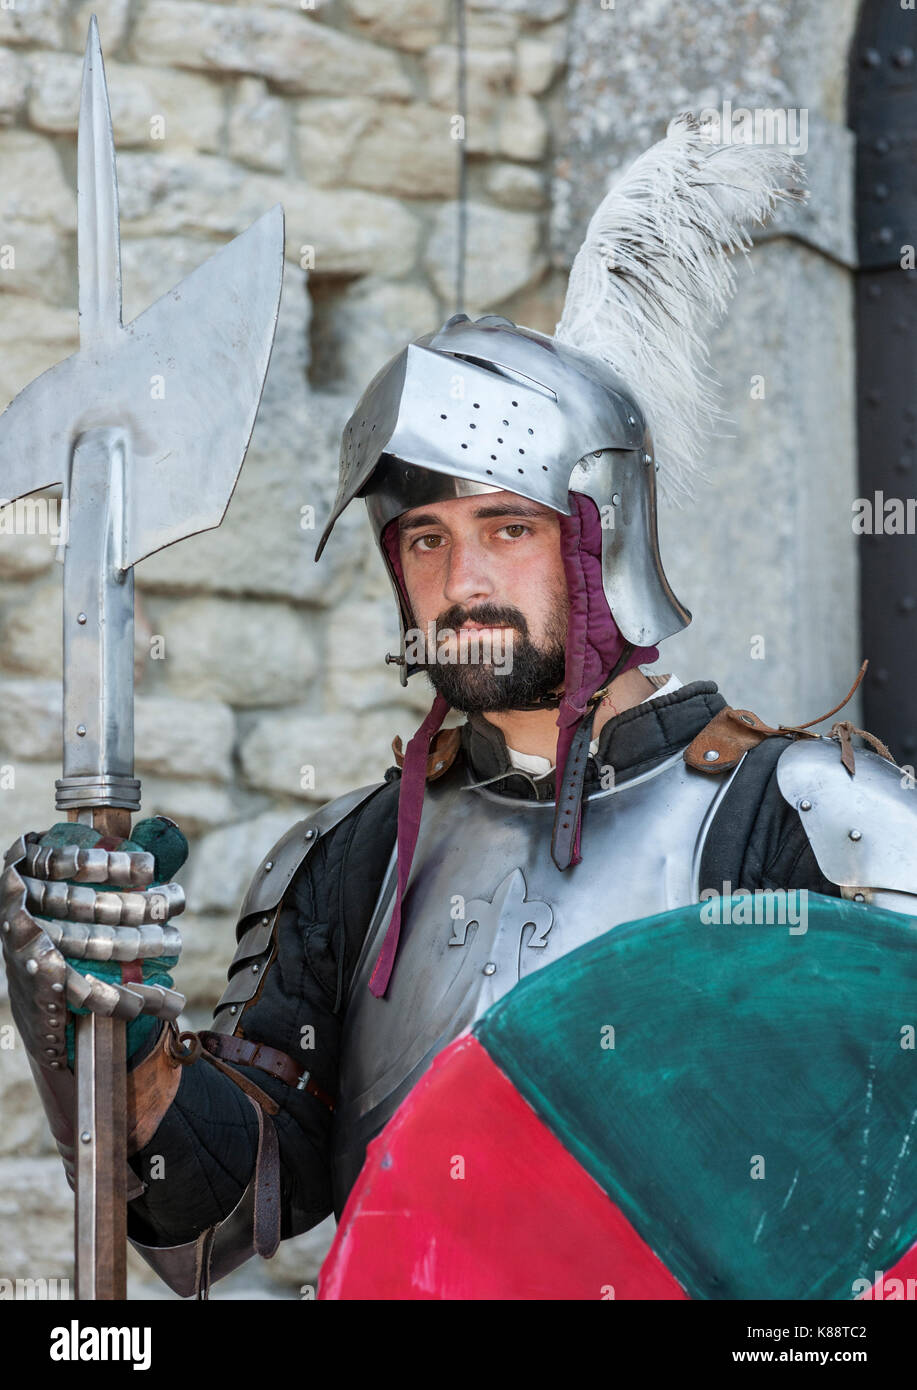 A Suit Of Armour Stock Photos & A Suit Of Armour Stock Images - Alamy